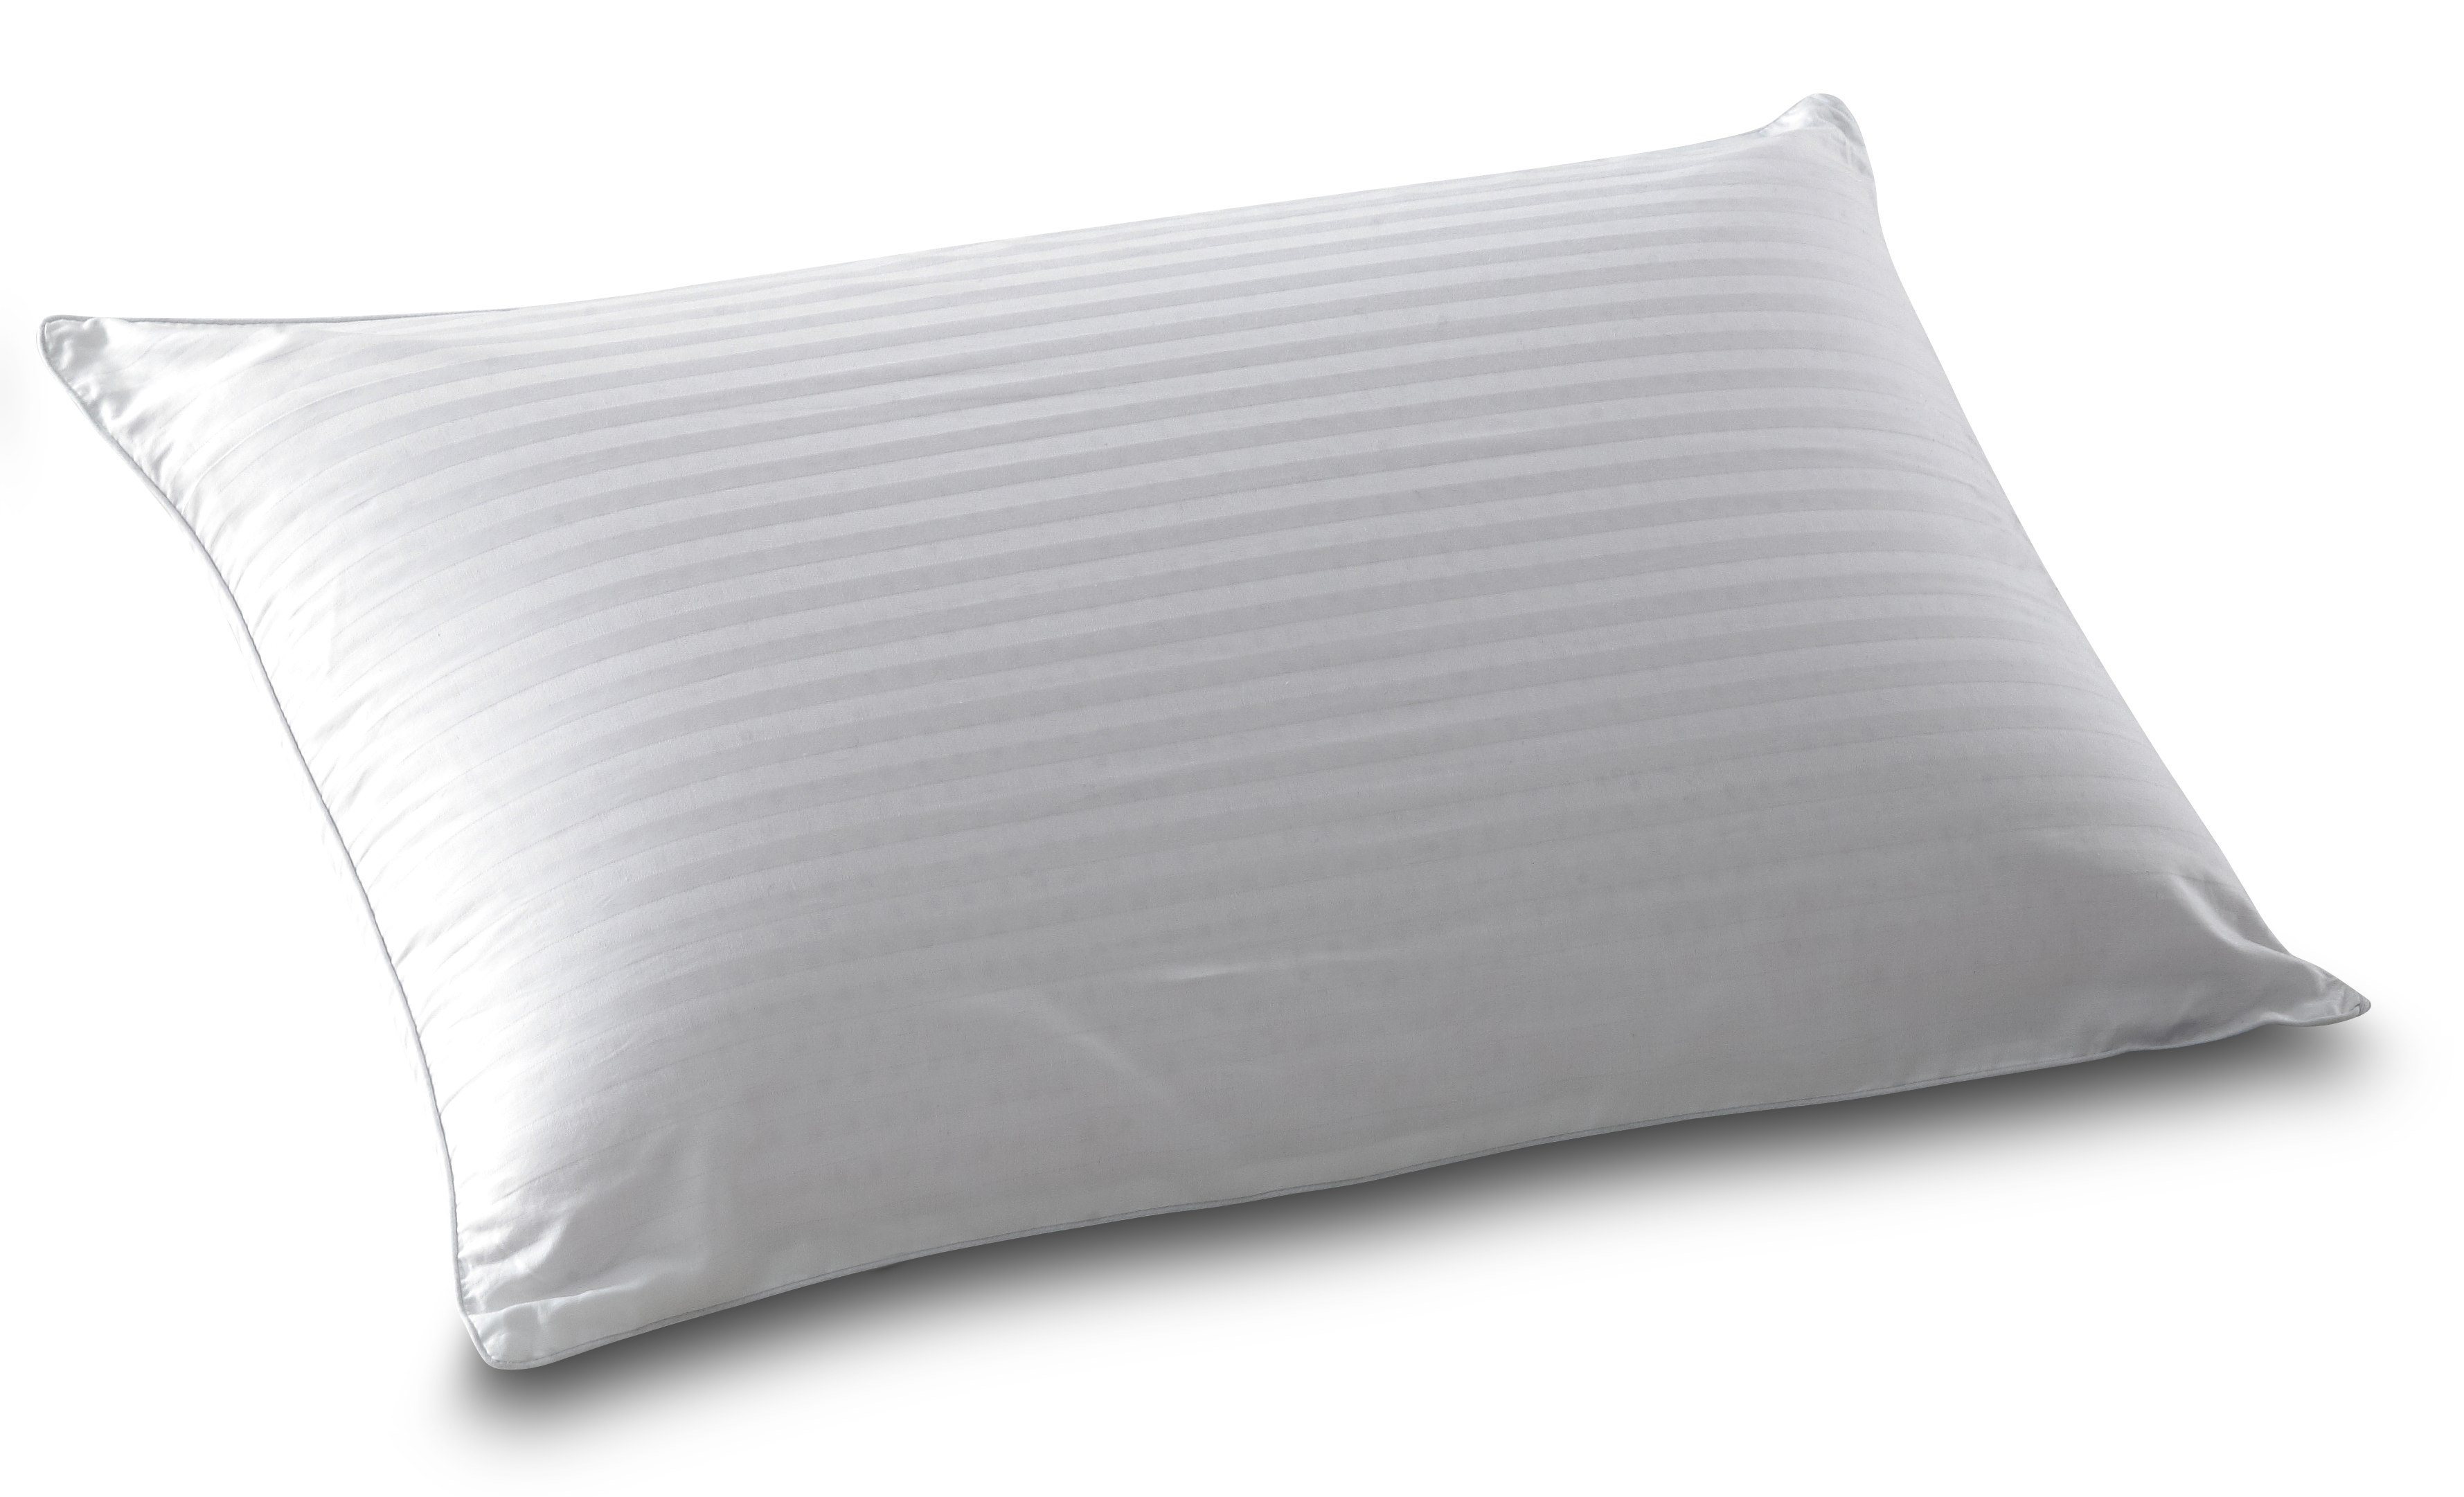 Super Comfort Pillow Dunlopillo available from the world of beds, doncaster